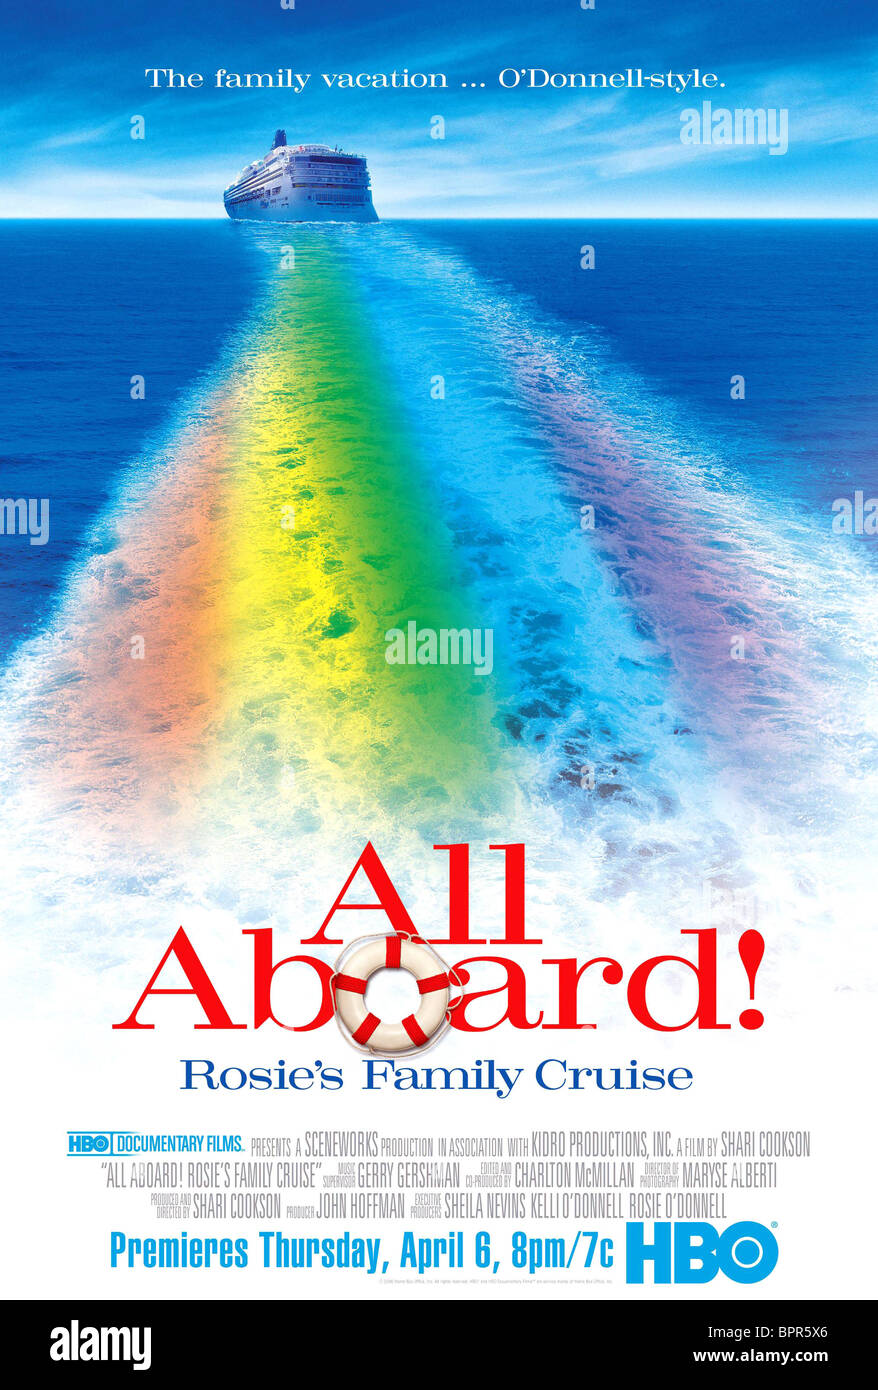 CRUISE SHIP MOVIE POSTER ALL ABOARD ROSIES FAMILY CRUISE - Cruise ship movie